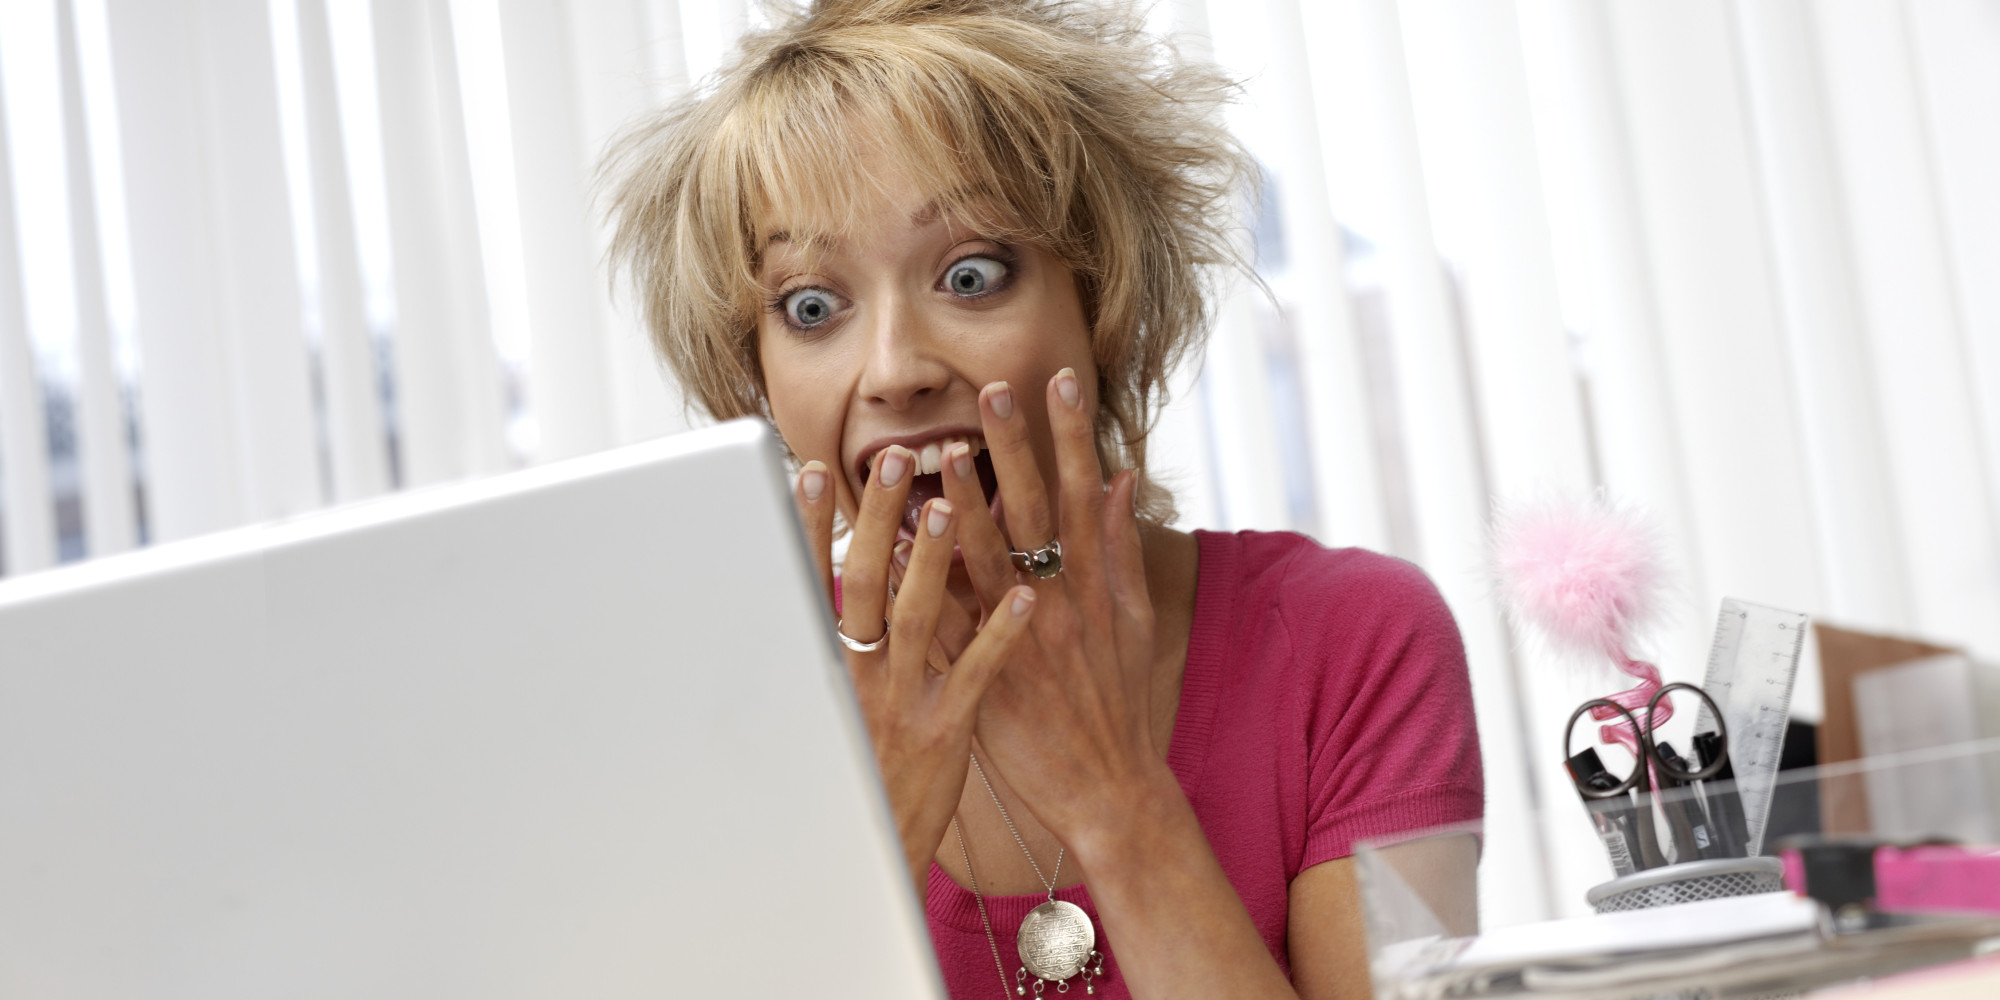 This is photo of adopted woman searching for birth family on social media. She's not aware of how she may be hurt. This post provides five landmines for her to be aware of to keep herself safe.